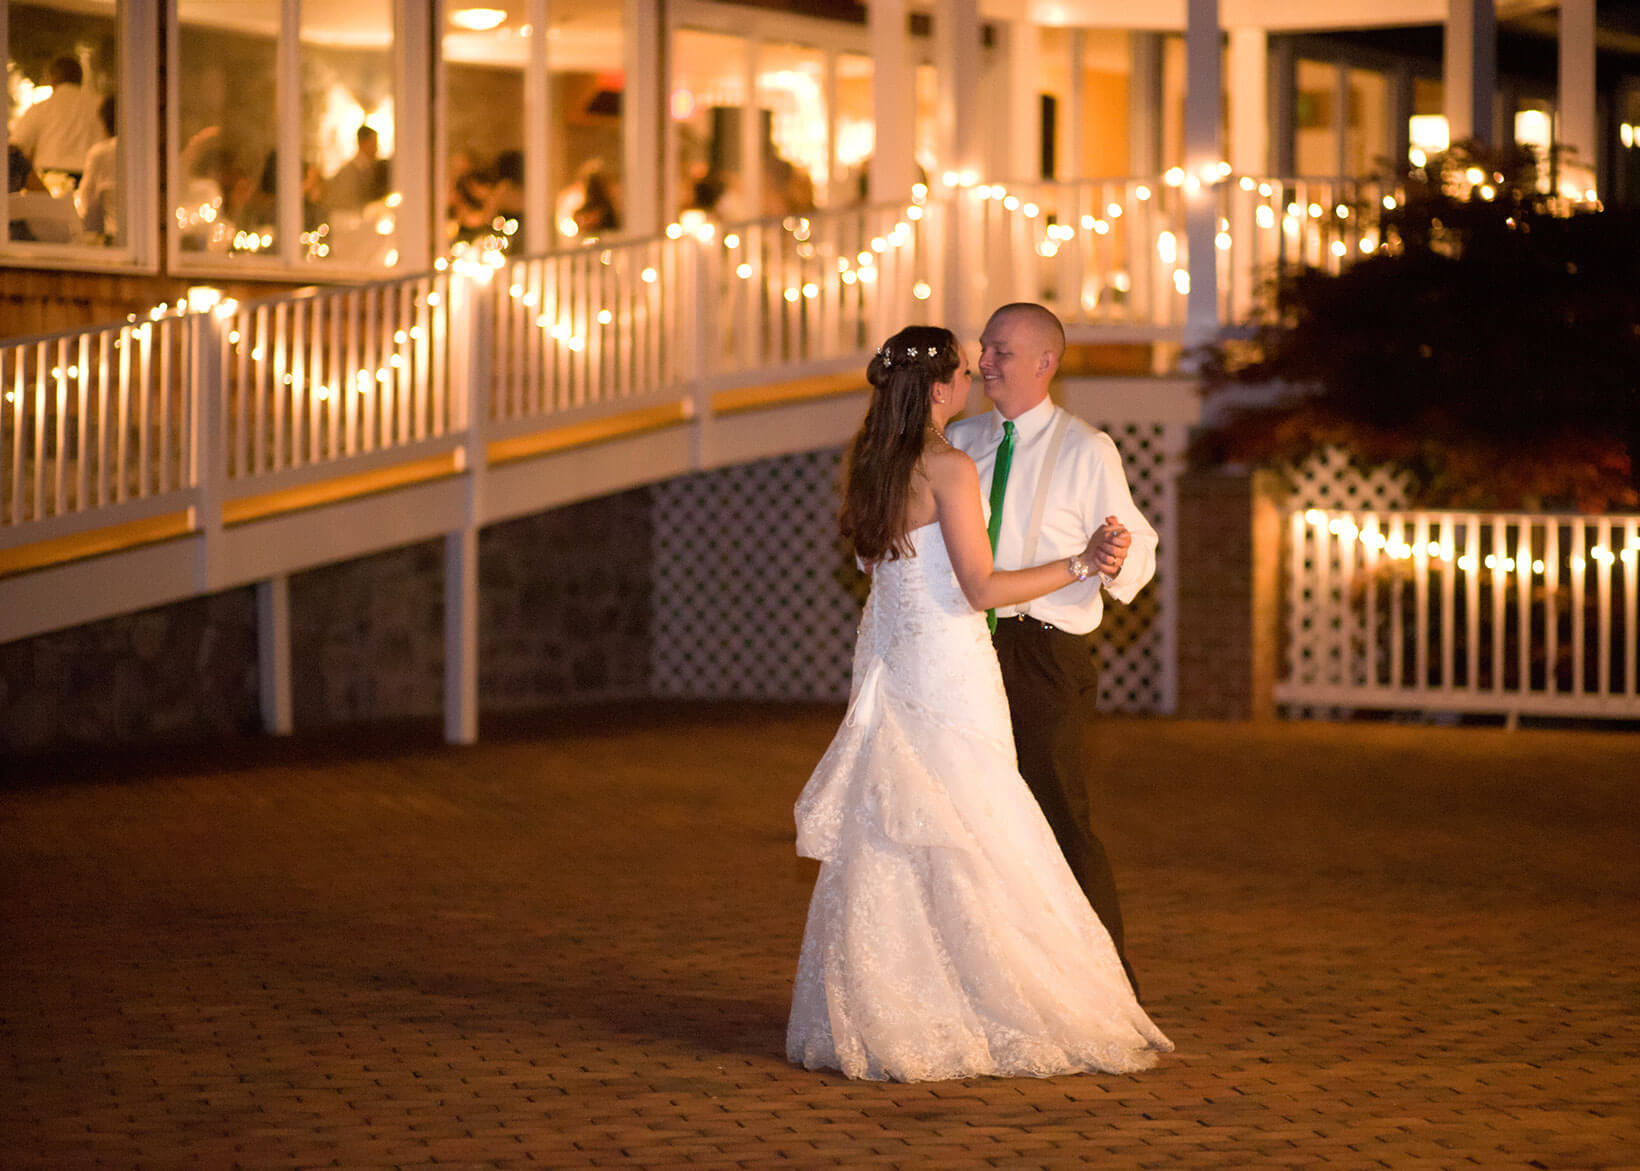 Couple dancing at well lit wedding